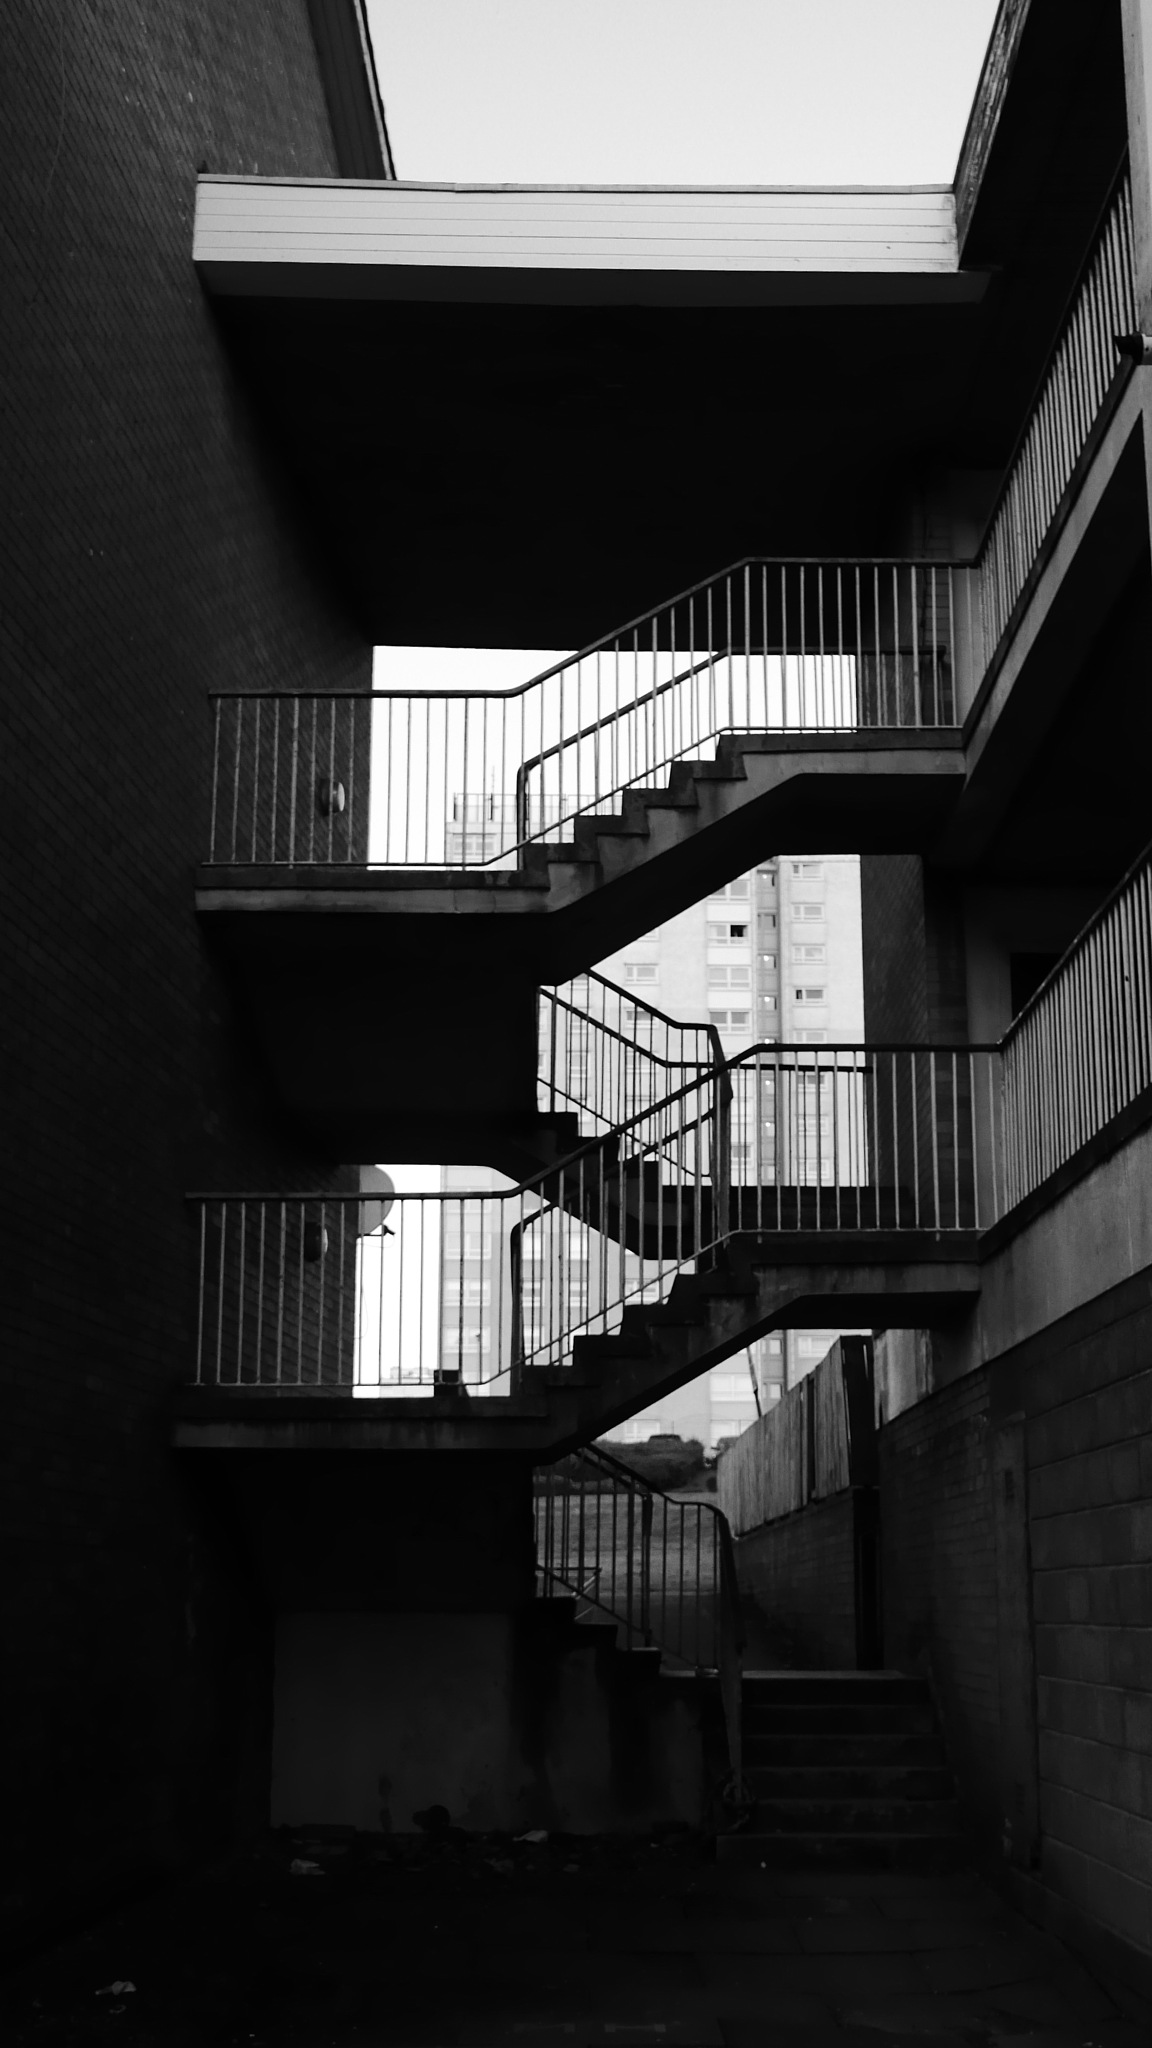 Stairs by Gavin Slater